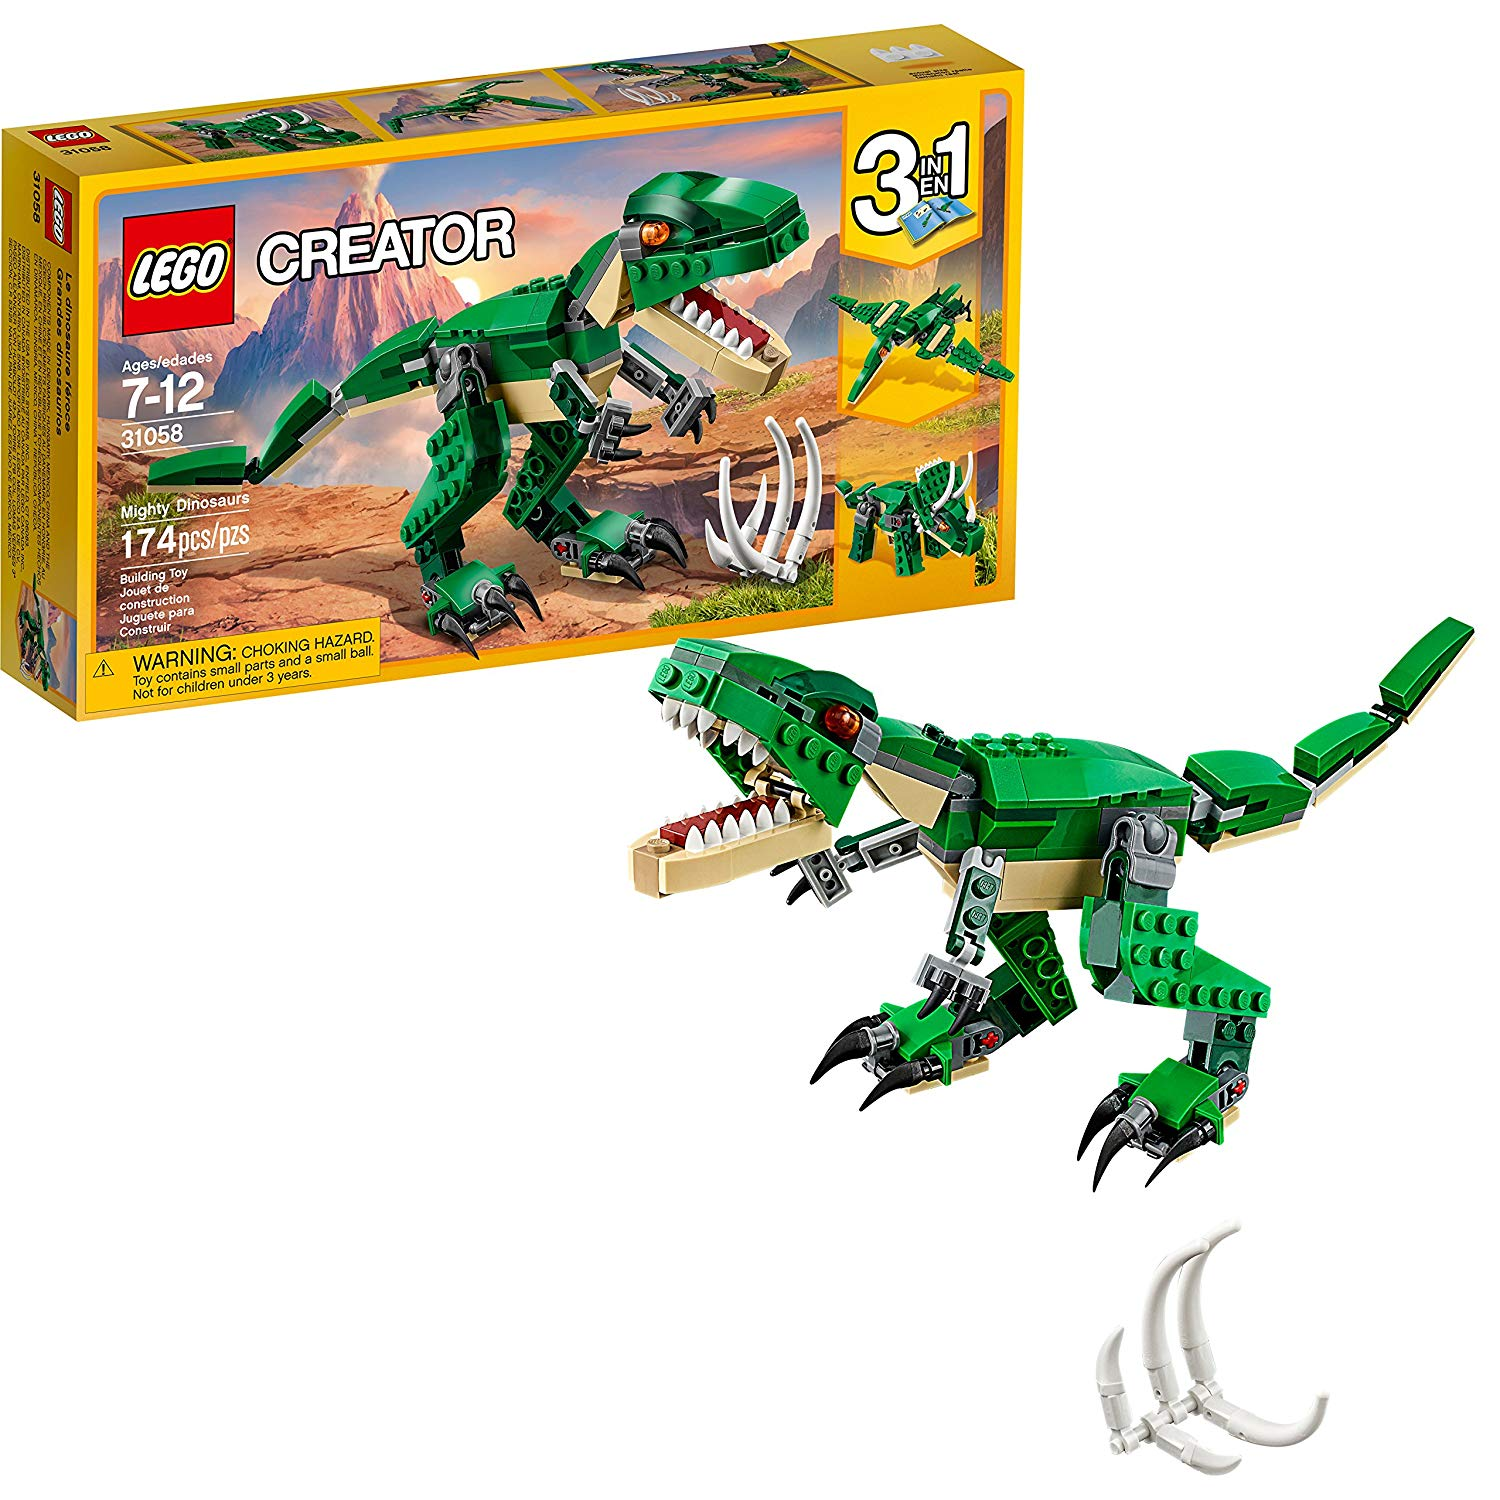 3.LEGO Creator 3-in-1 Mighty Dinosaurs (31058)